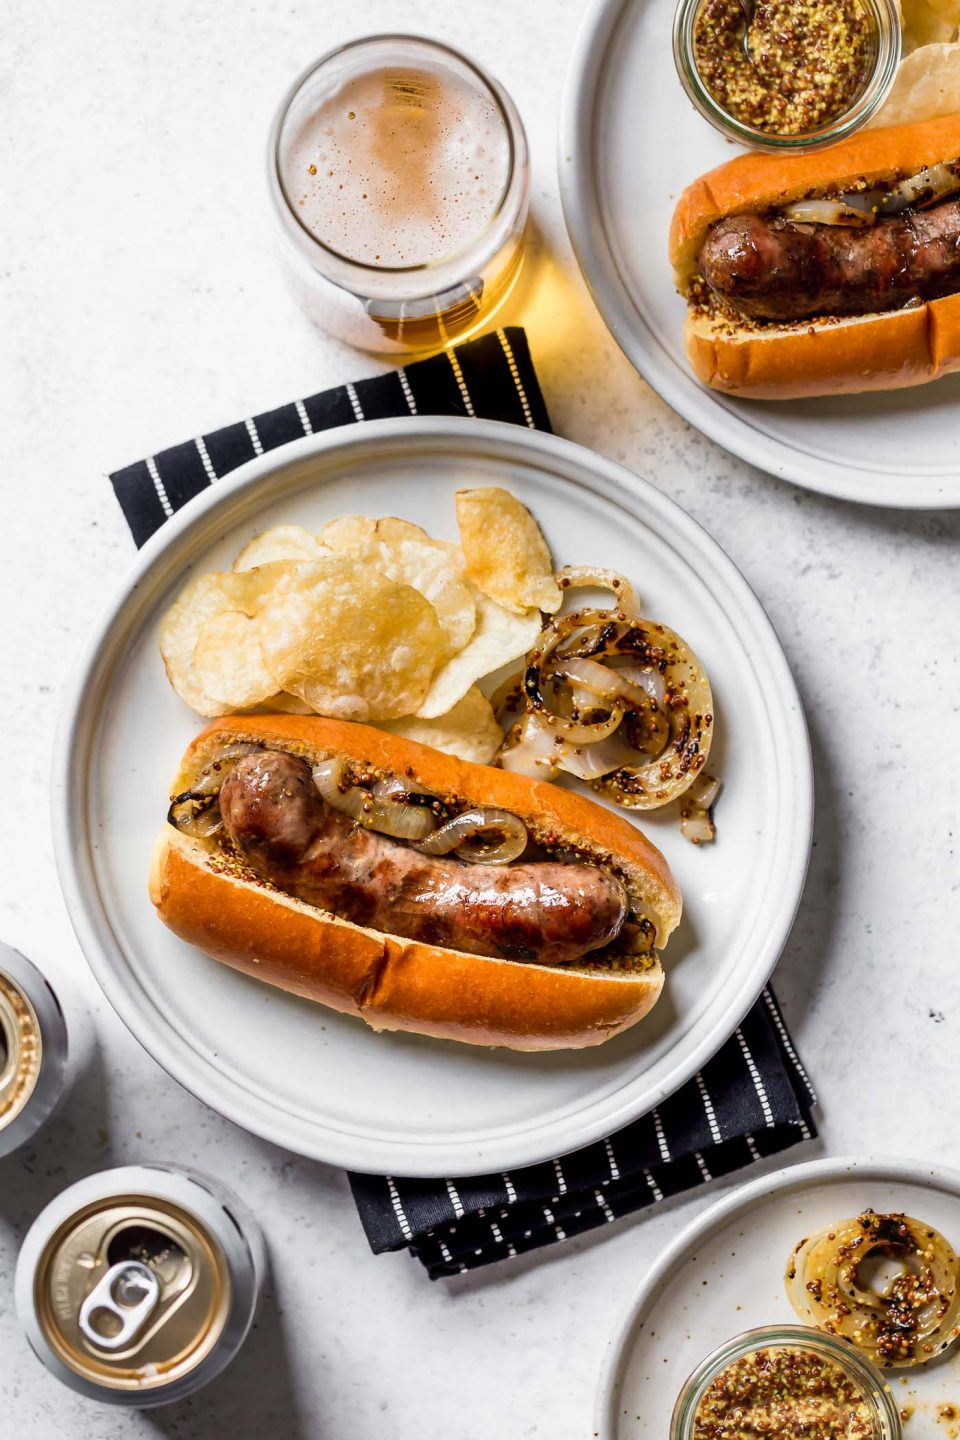 Grilled Beer Brat on a brioche bun, sitting on a small white plate with potato chips & grilled onions. The plate is on a black & white striped napkin atop a white surface. Surrounding the plate is a glass of beer, cans of Miller Light beer, a small ramekin of whole grain mustard, & a second plate of beer boiled brats.